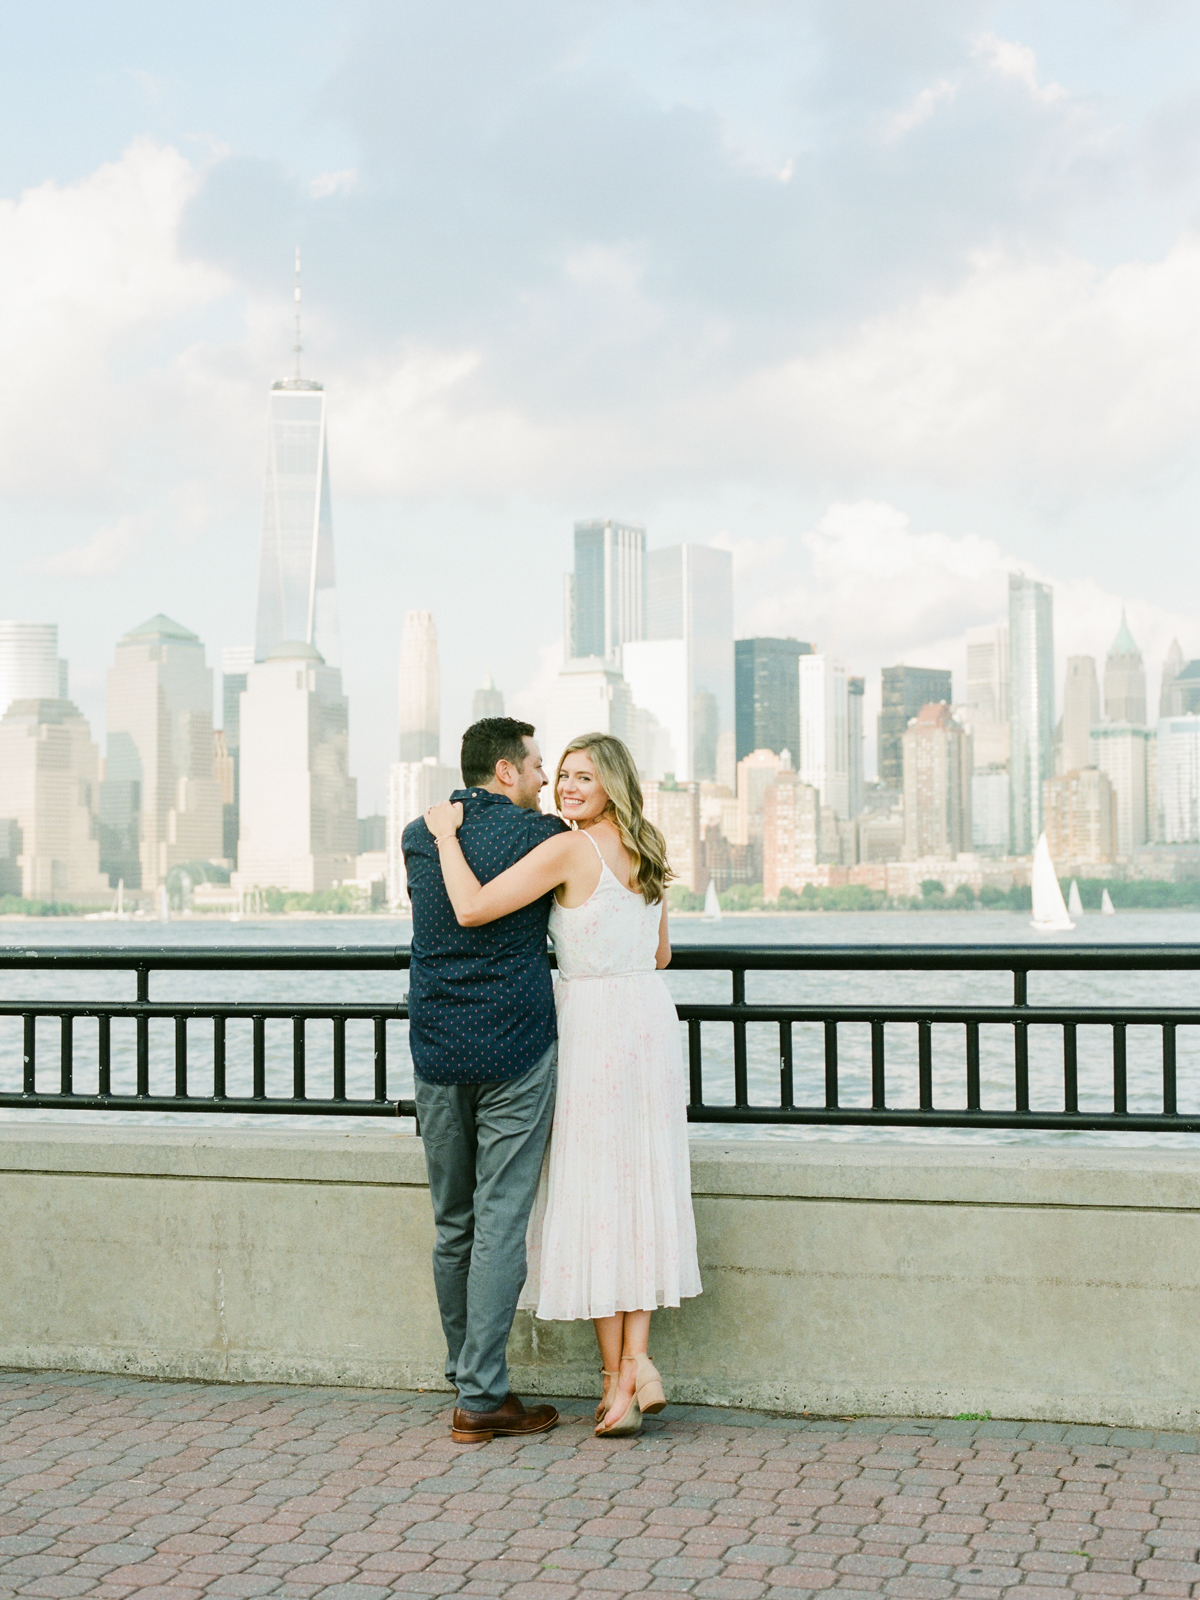 NYC-skyline-engagement-session-by-Tanya Isaeva-40.jpg